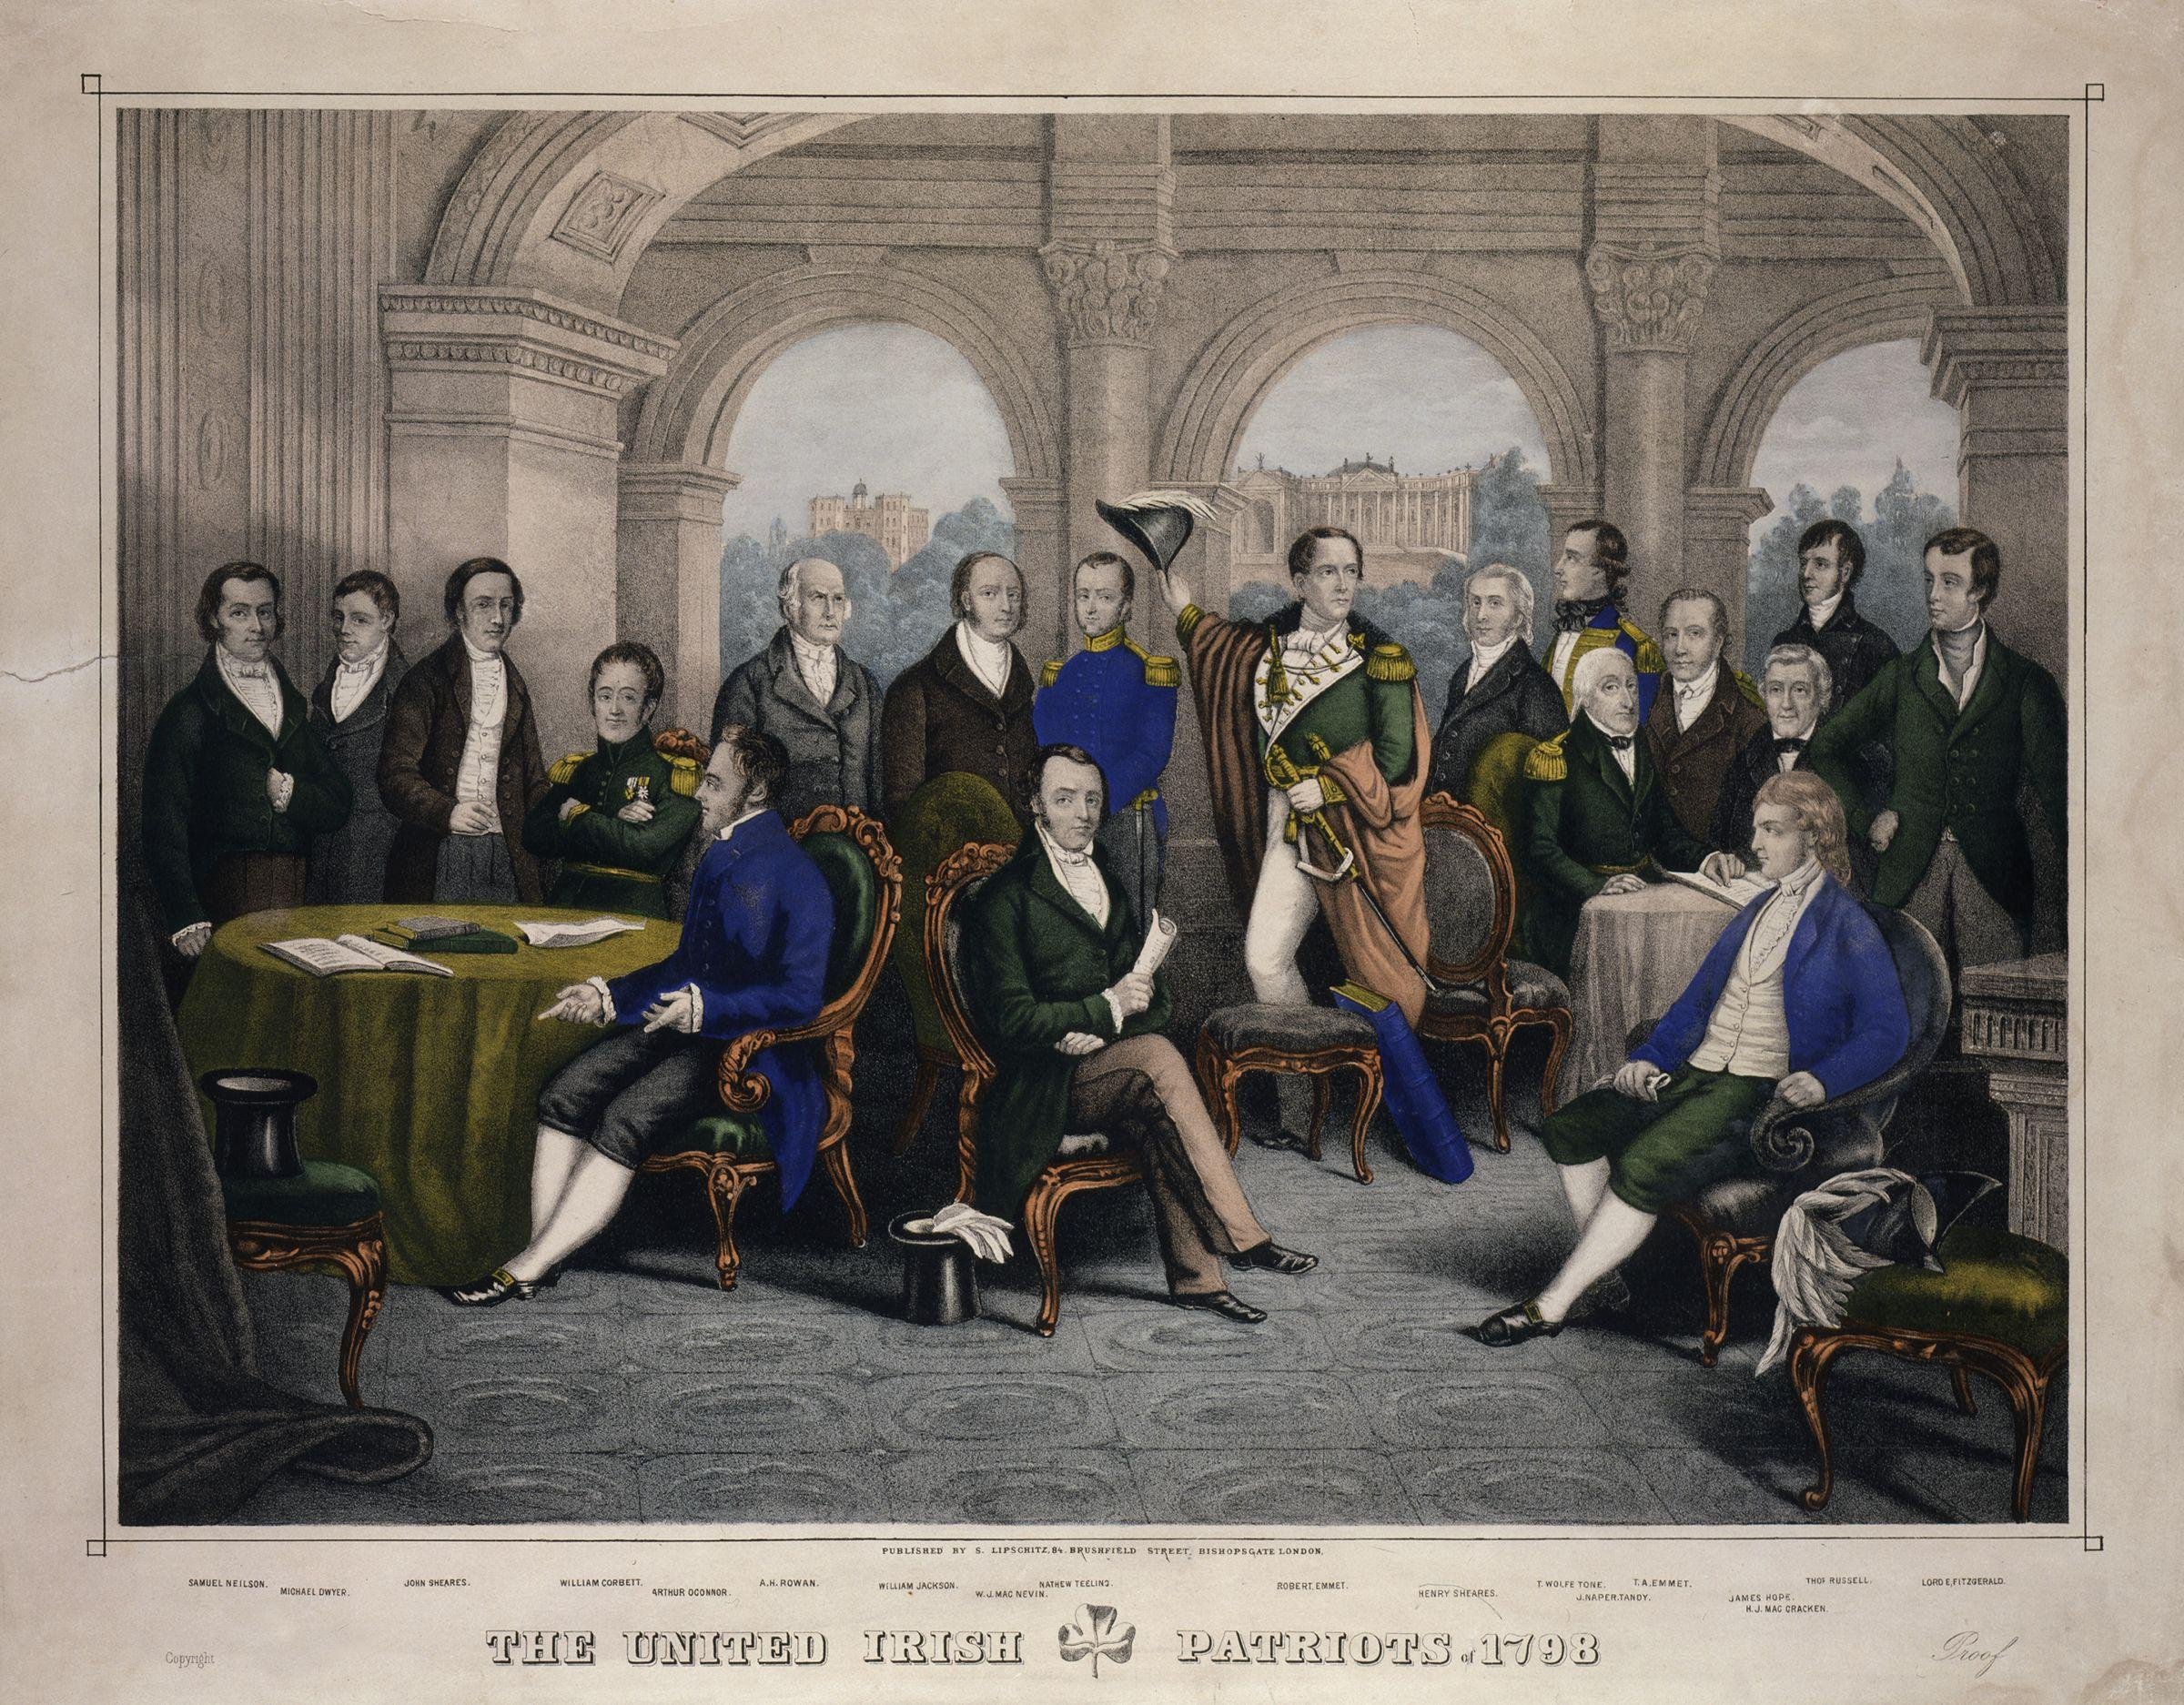 The Society of United Irishmen – patriots of 1798